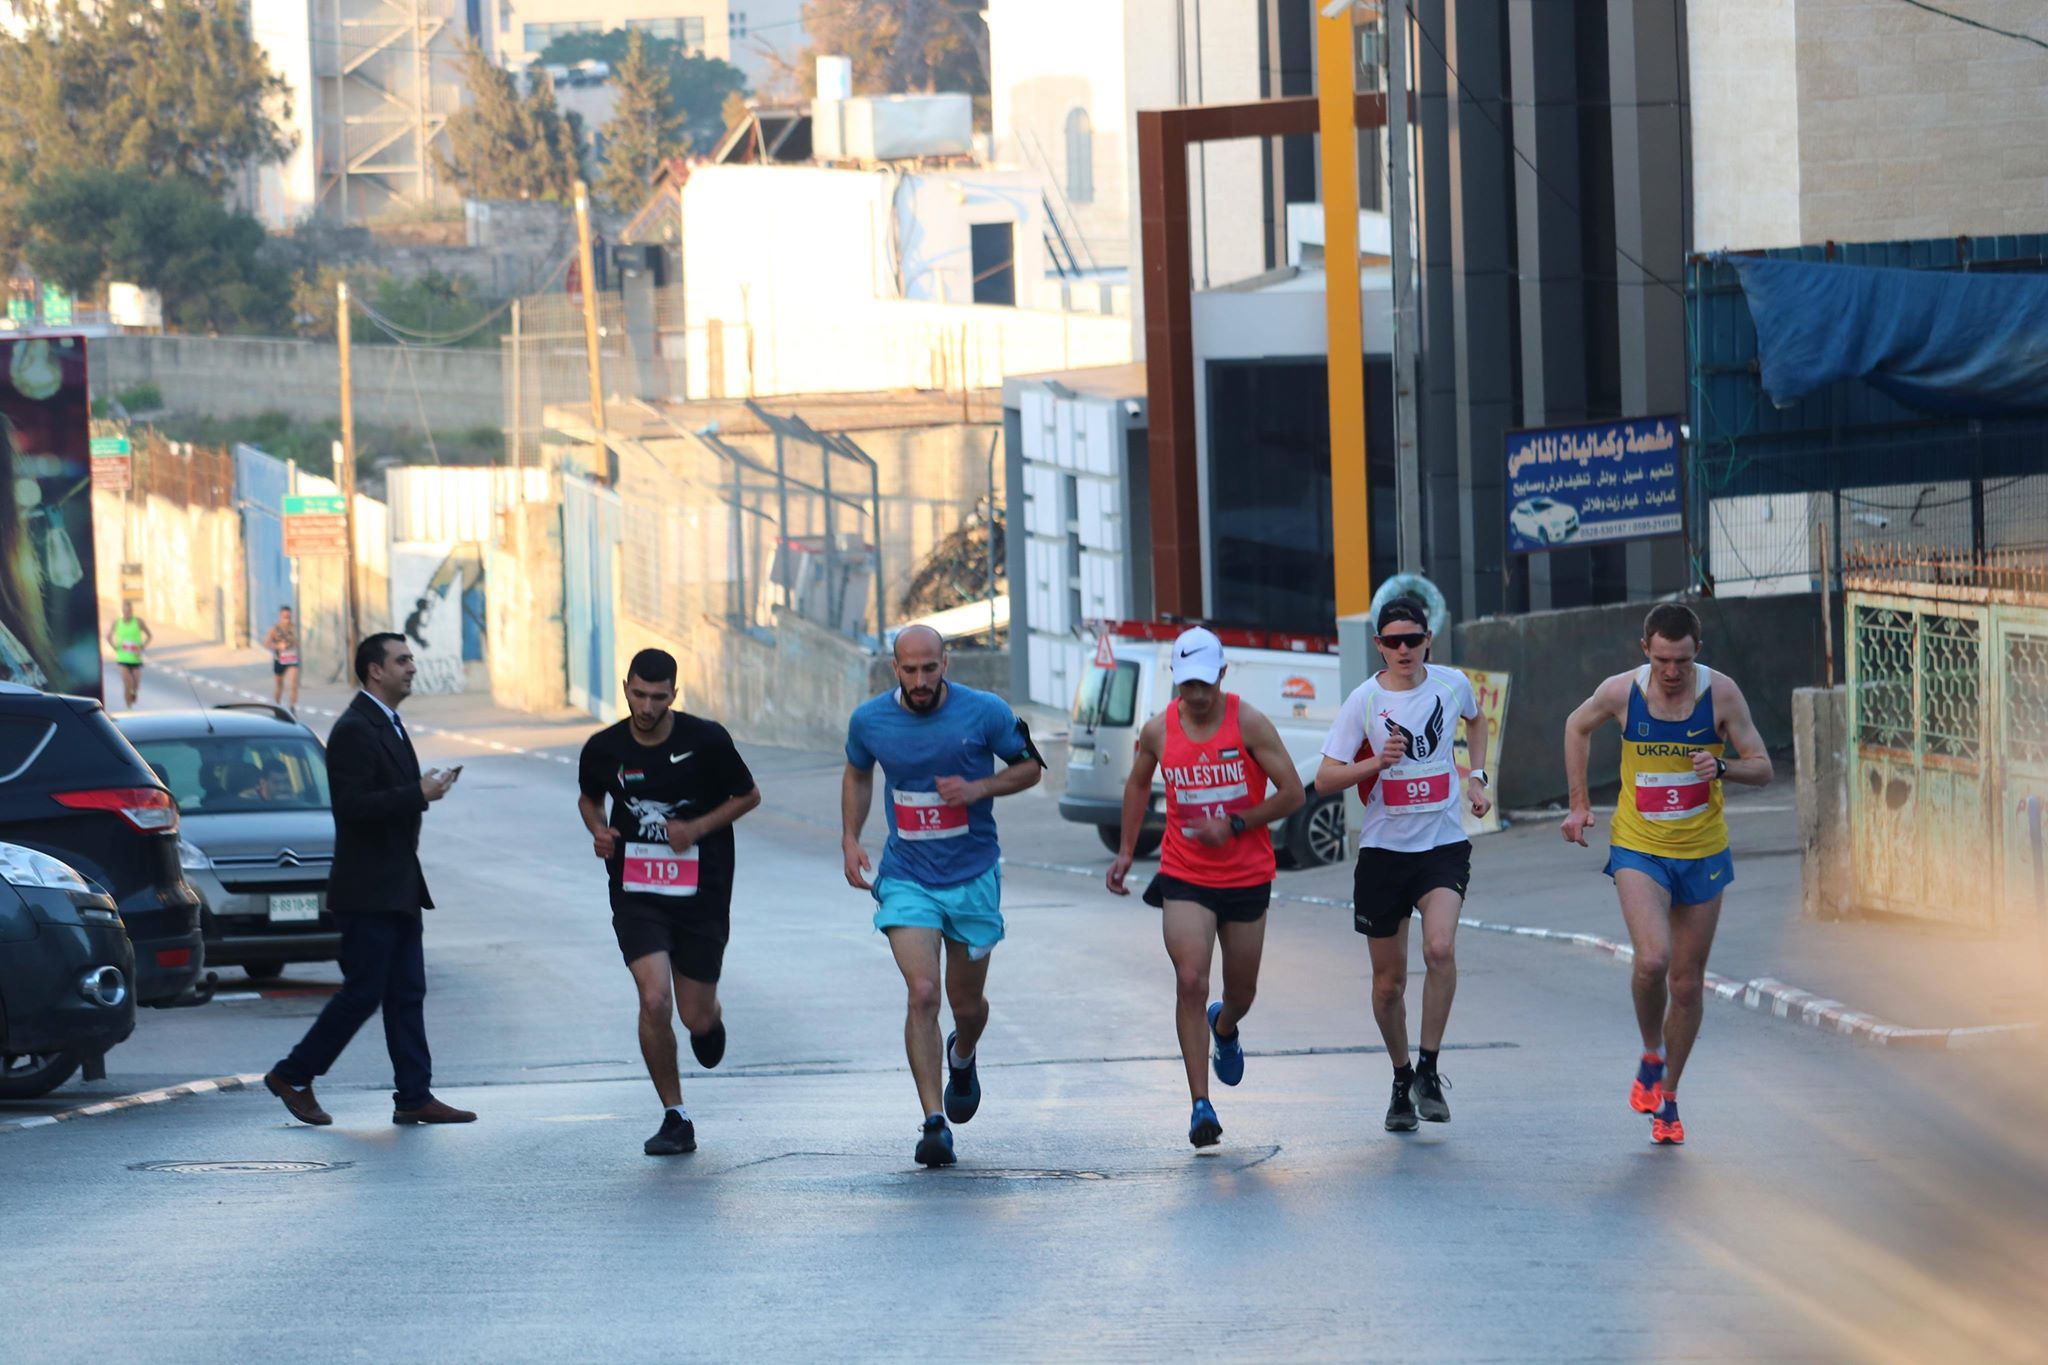 Palestine marathon: a run between the walls